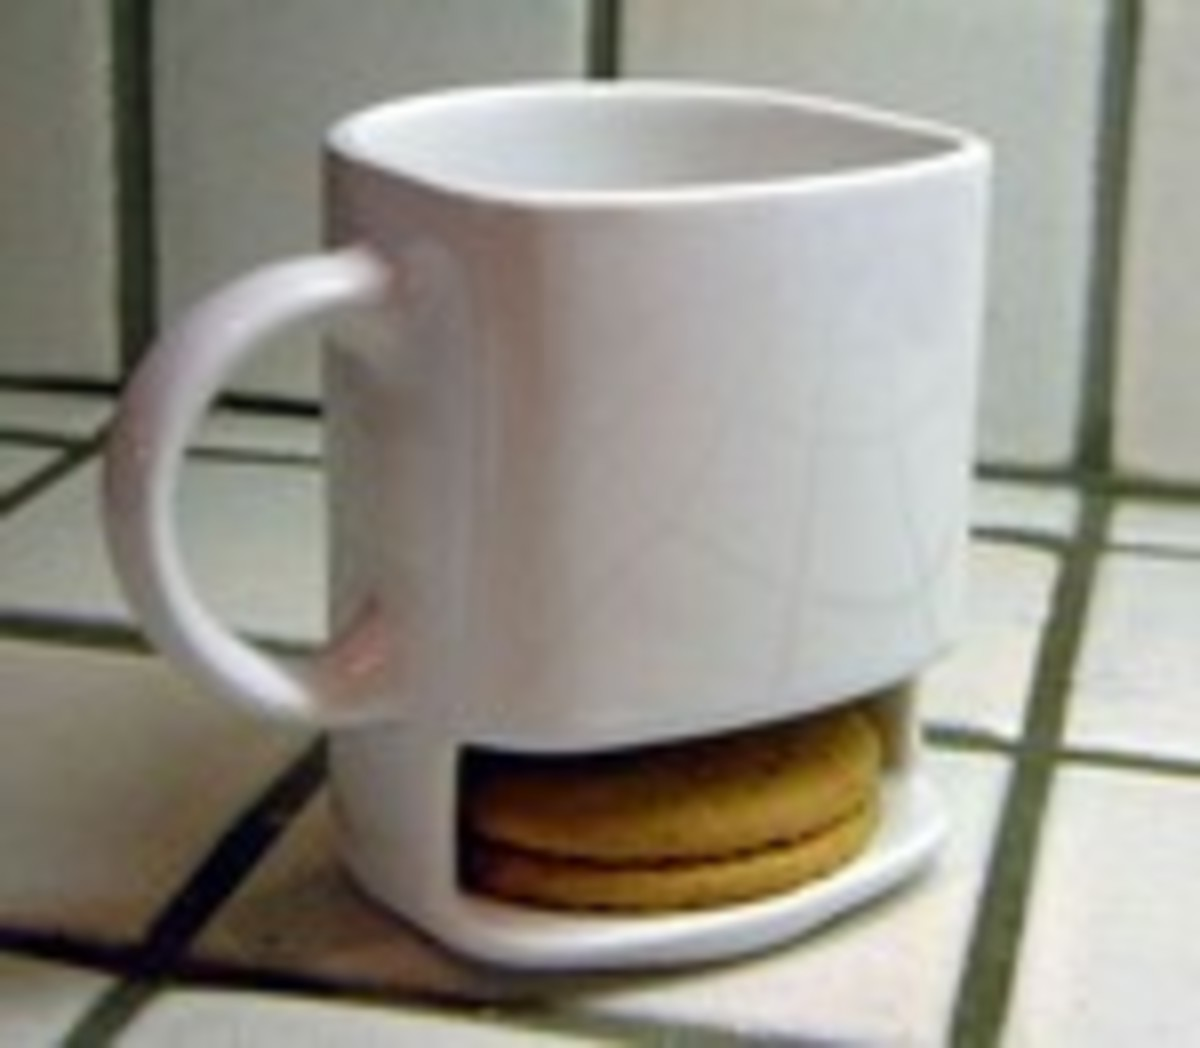 You can put cookies and coffe for the LAZY hehe